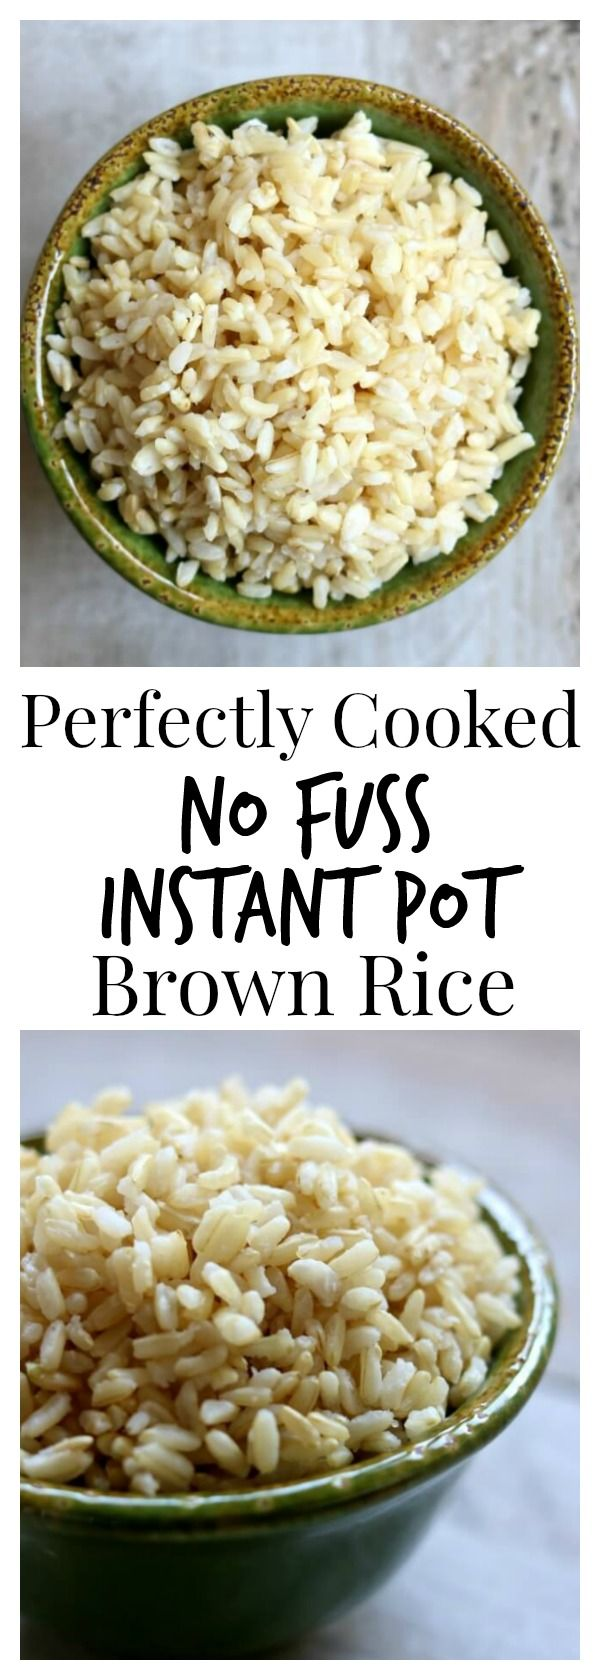 Best 25 brown rice ideas on pinterest rice recipes grains list instant pot brown rice ccuart Images